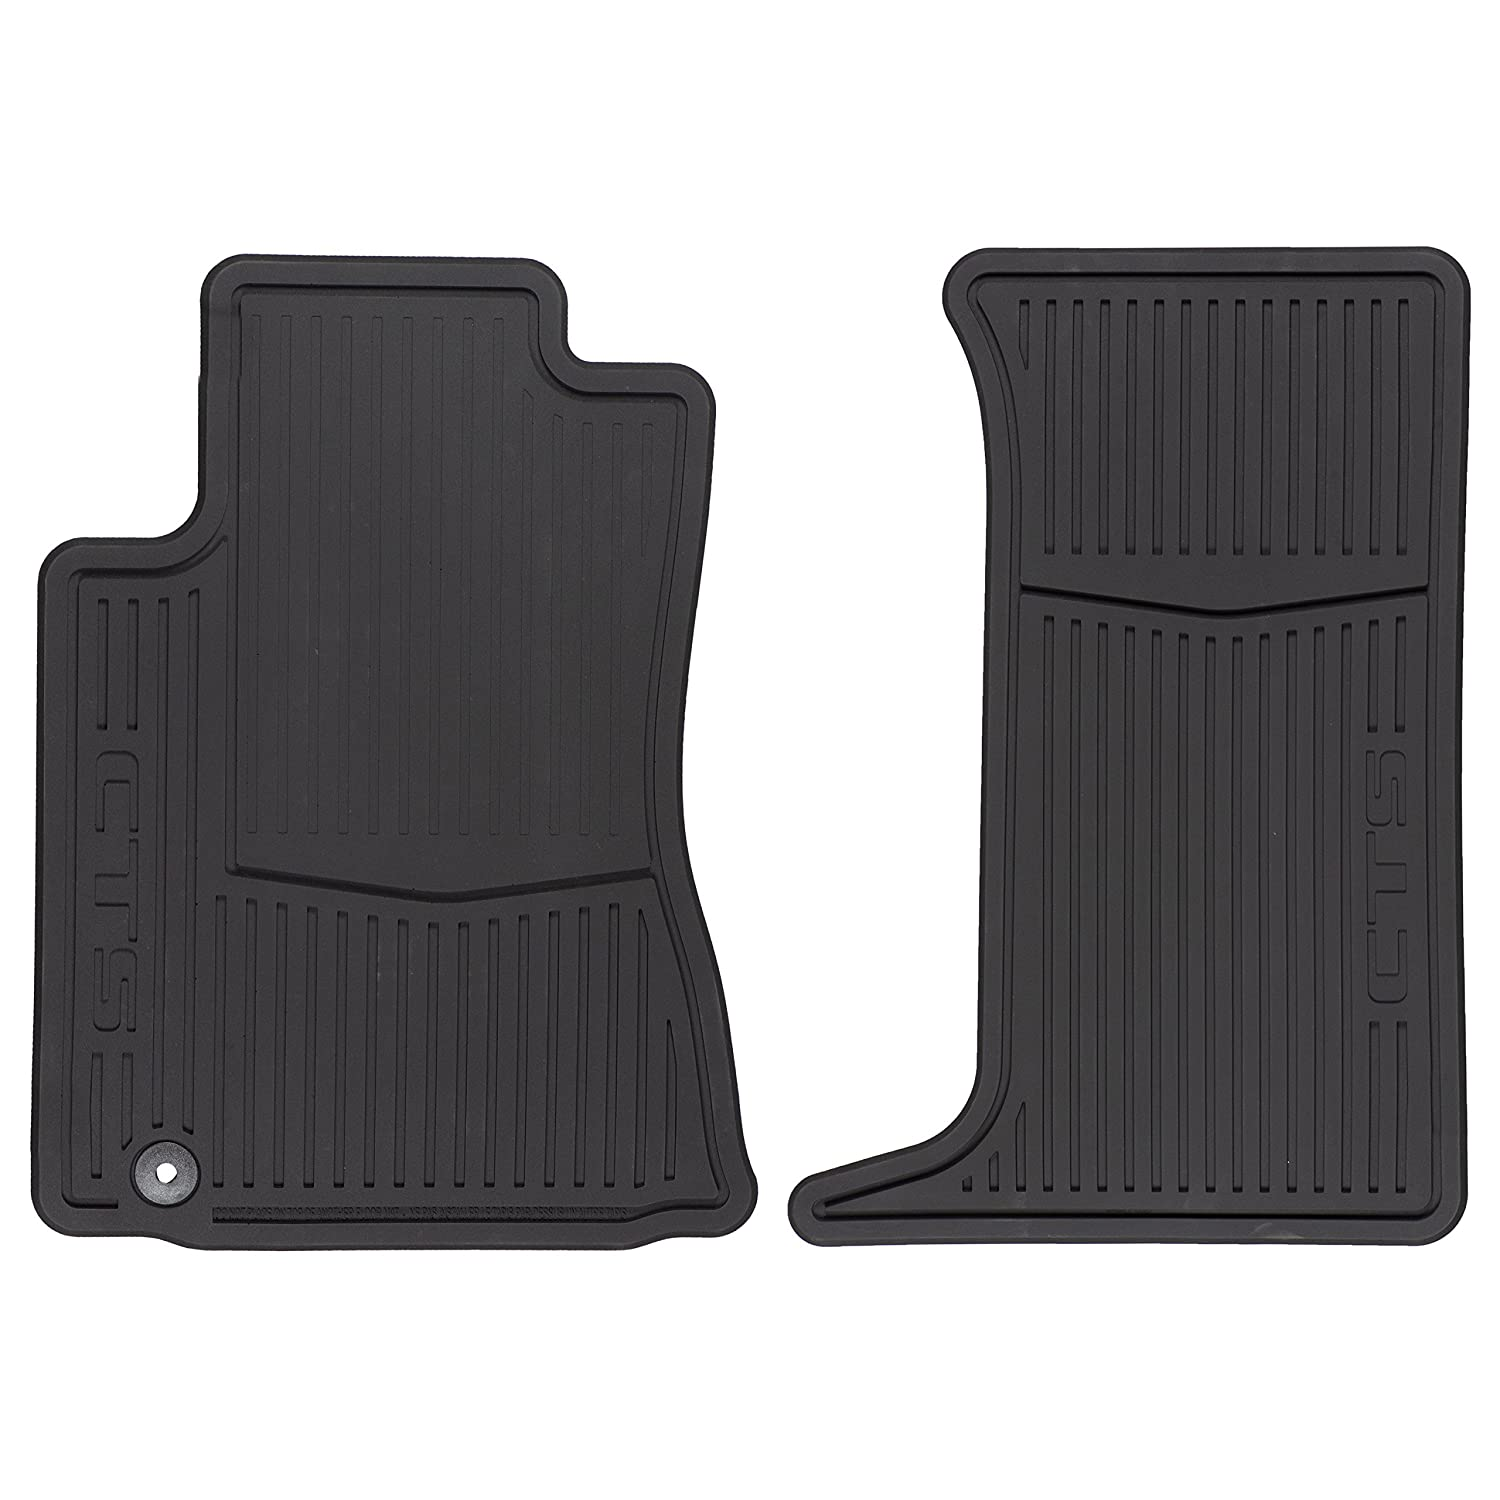 GM # 22784766 Floor Mats - Front Premium All Weather - Ebony with CTS Logo GMC